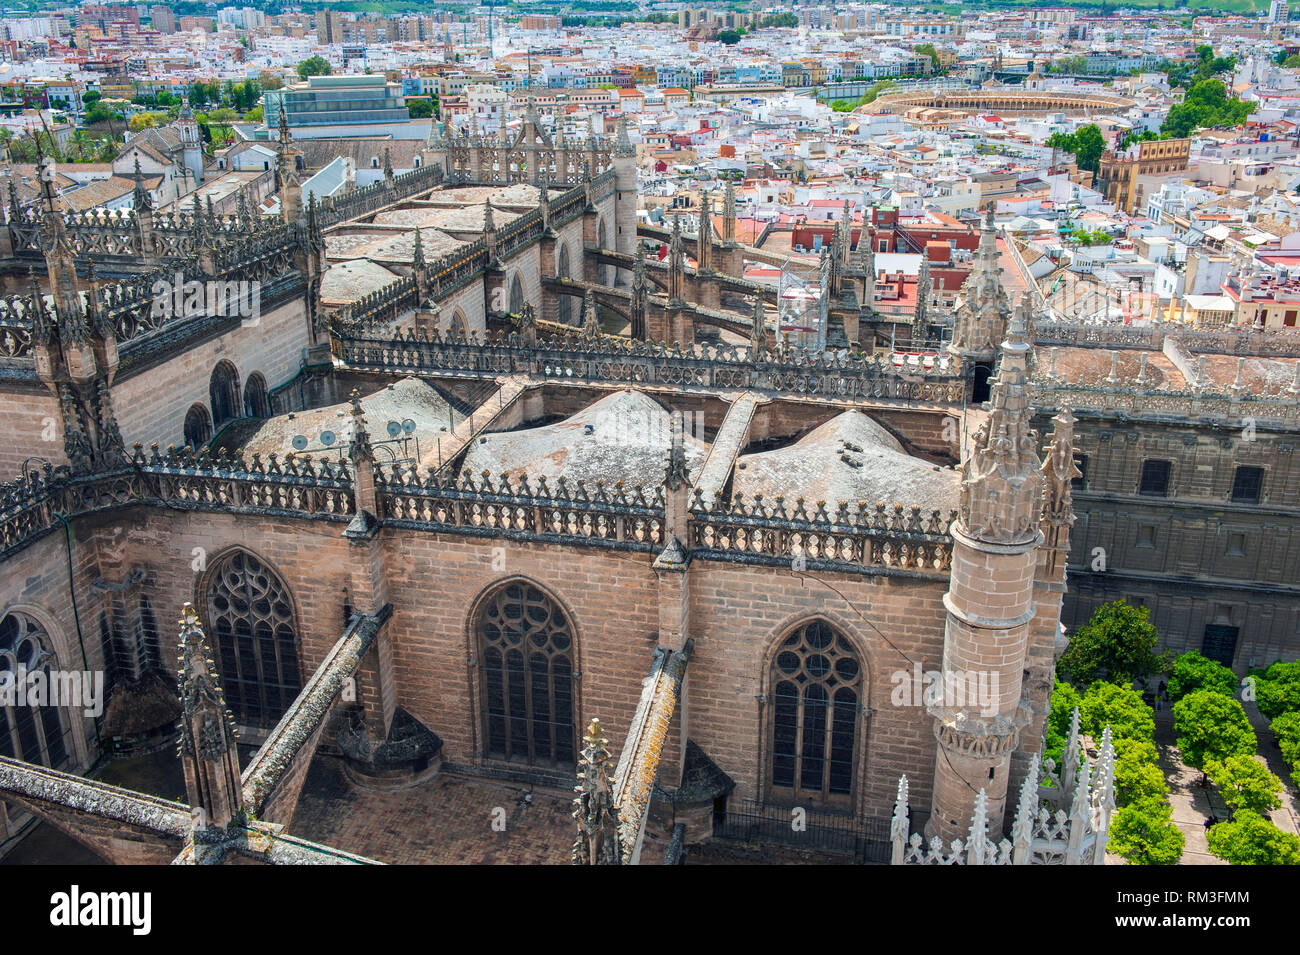 Looking down on Seville Cathedral from the church's Giralda. Built on the site of the Moorish 12th century Almohad mosque, it is one of the largest Ch Stock Photo